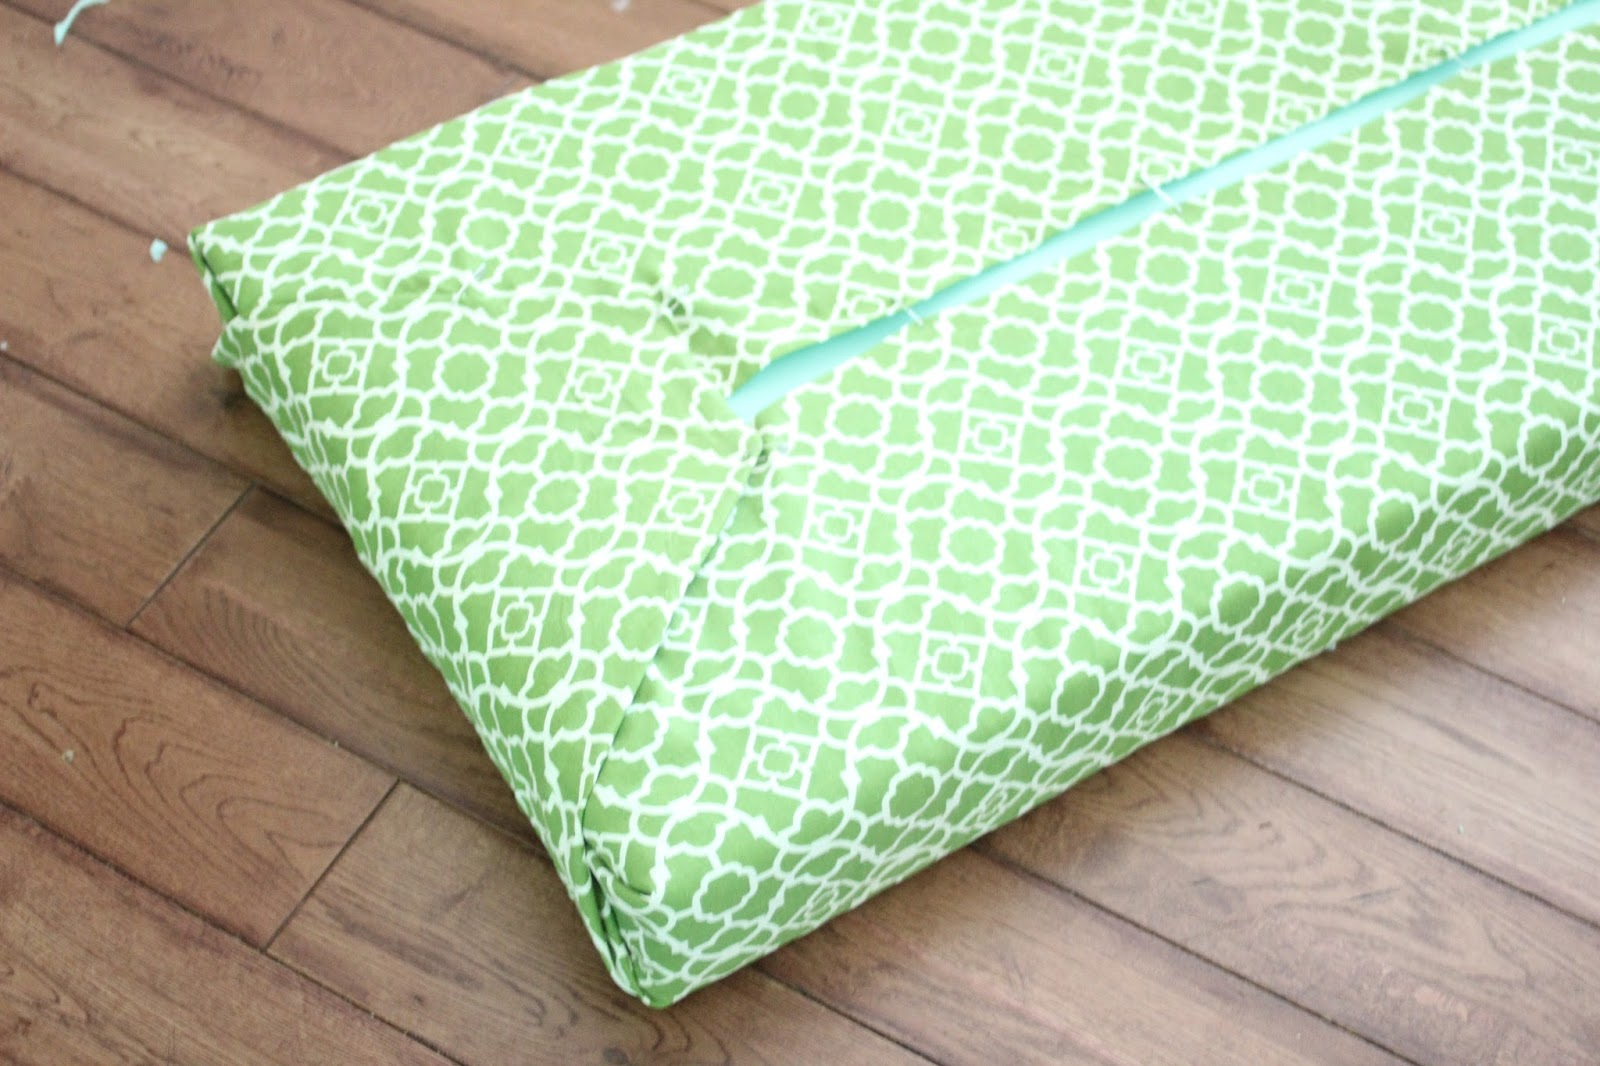 Easy No Sew Cushion With Foam And Safety Pins With A Curtain Panel As  Fabric Via